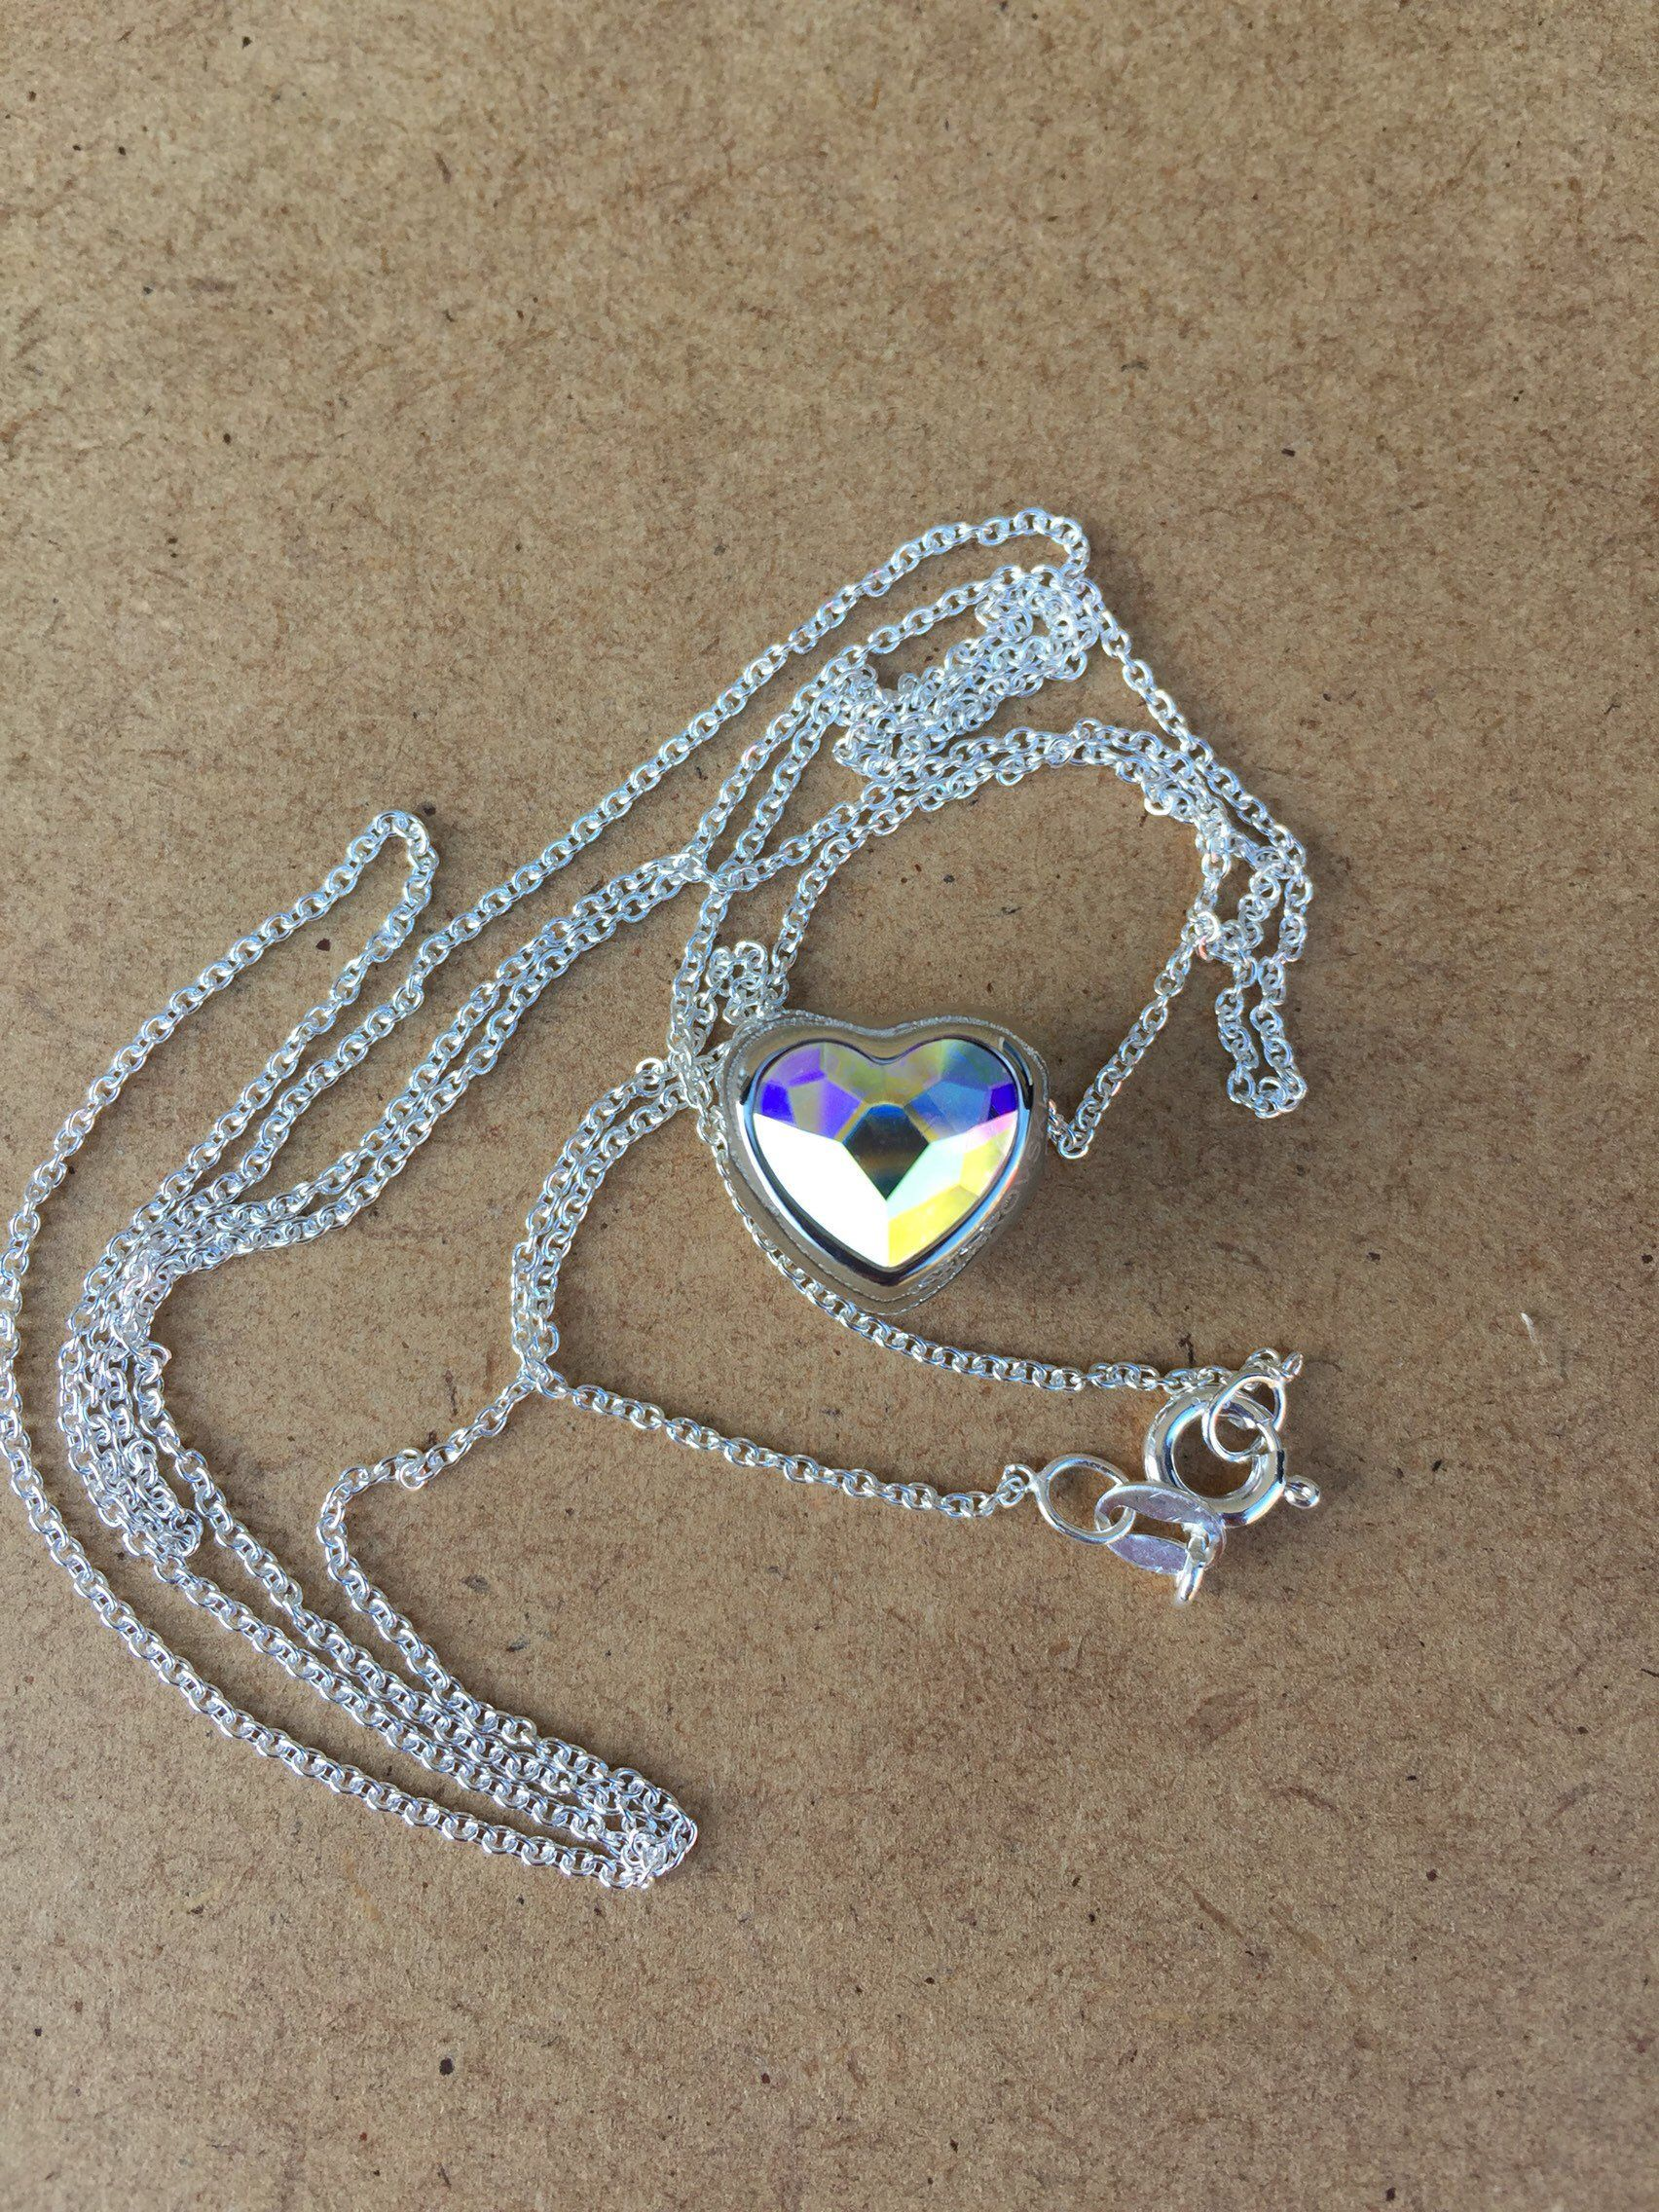 Excited to share this item from my  etsy shop  Swarovski Pendant Necklace dd1b496b2